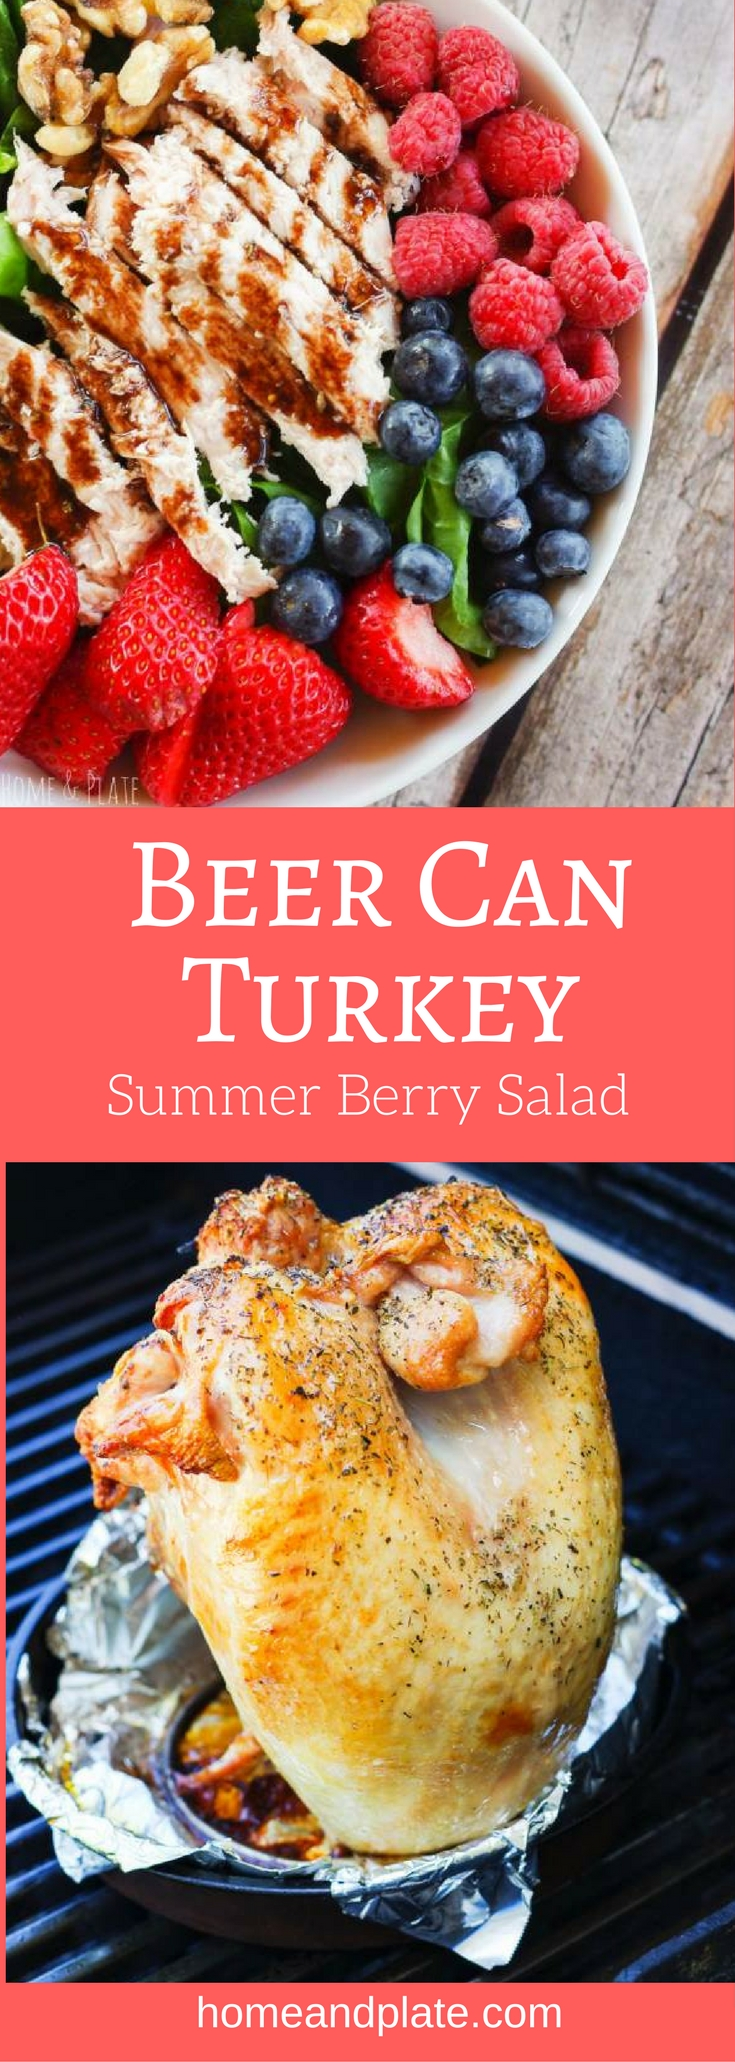 #Ad | Beer Can Turkey Summer Berry Salad | www.homeandplate.com | Fresh sweet summer berries are paired with succulent grilled turkey and served with a drizzle of blackberry balsamic vinaigrette. There's no better way to celebrate summer! #TurkeyLovers